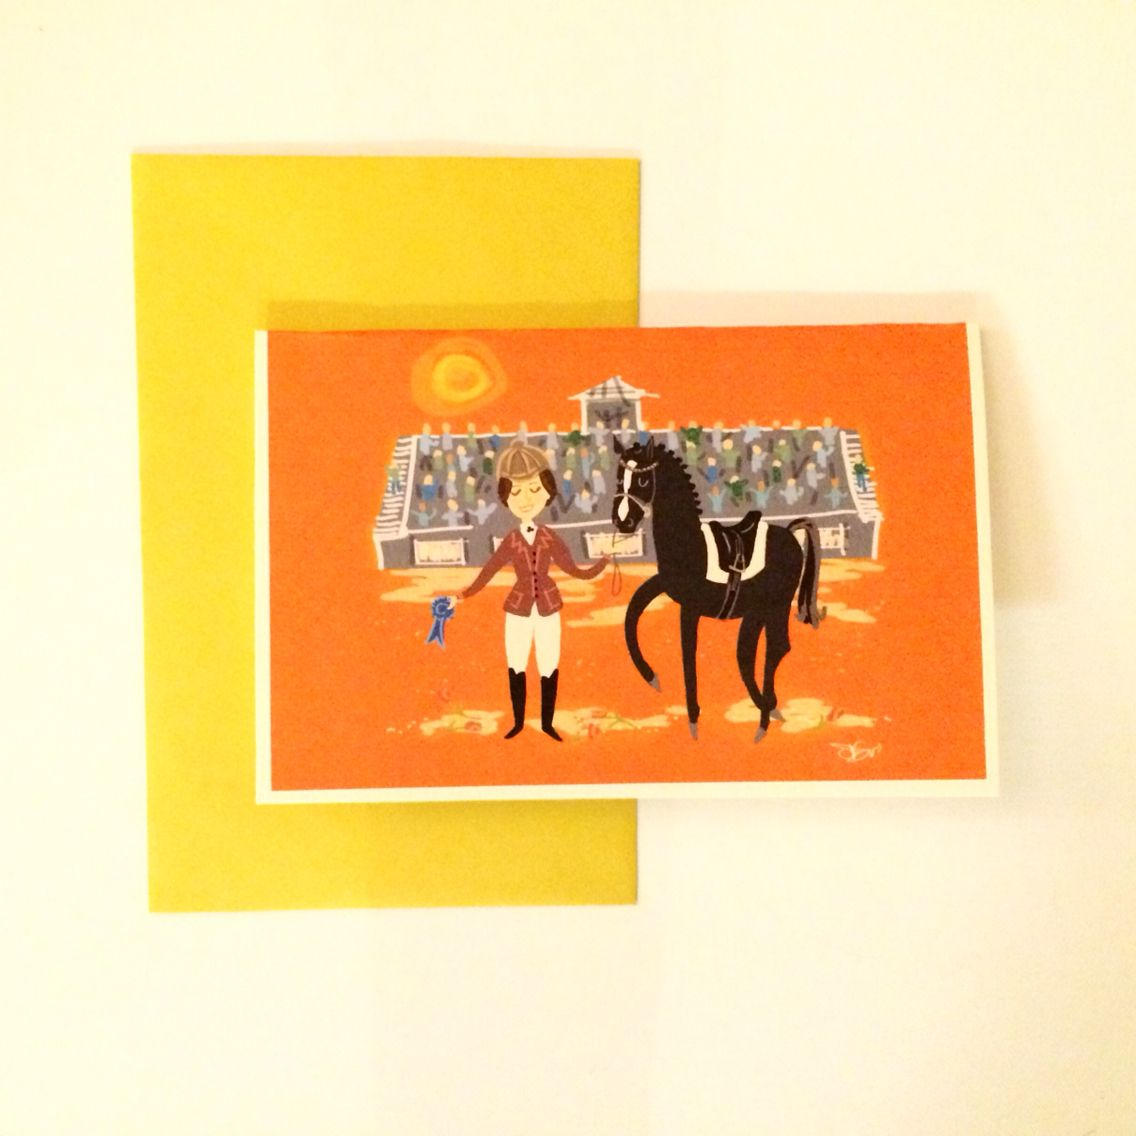 Retro Inspired Oversized Greeting Cards Featuring Illustrations By